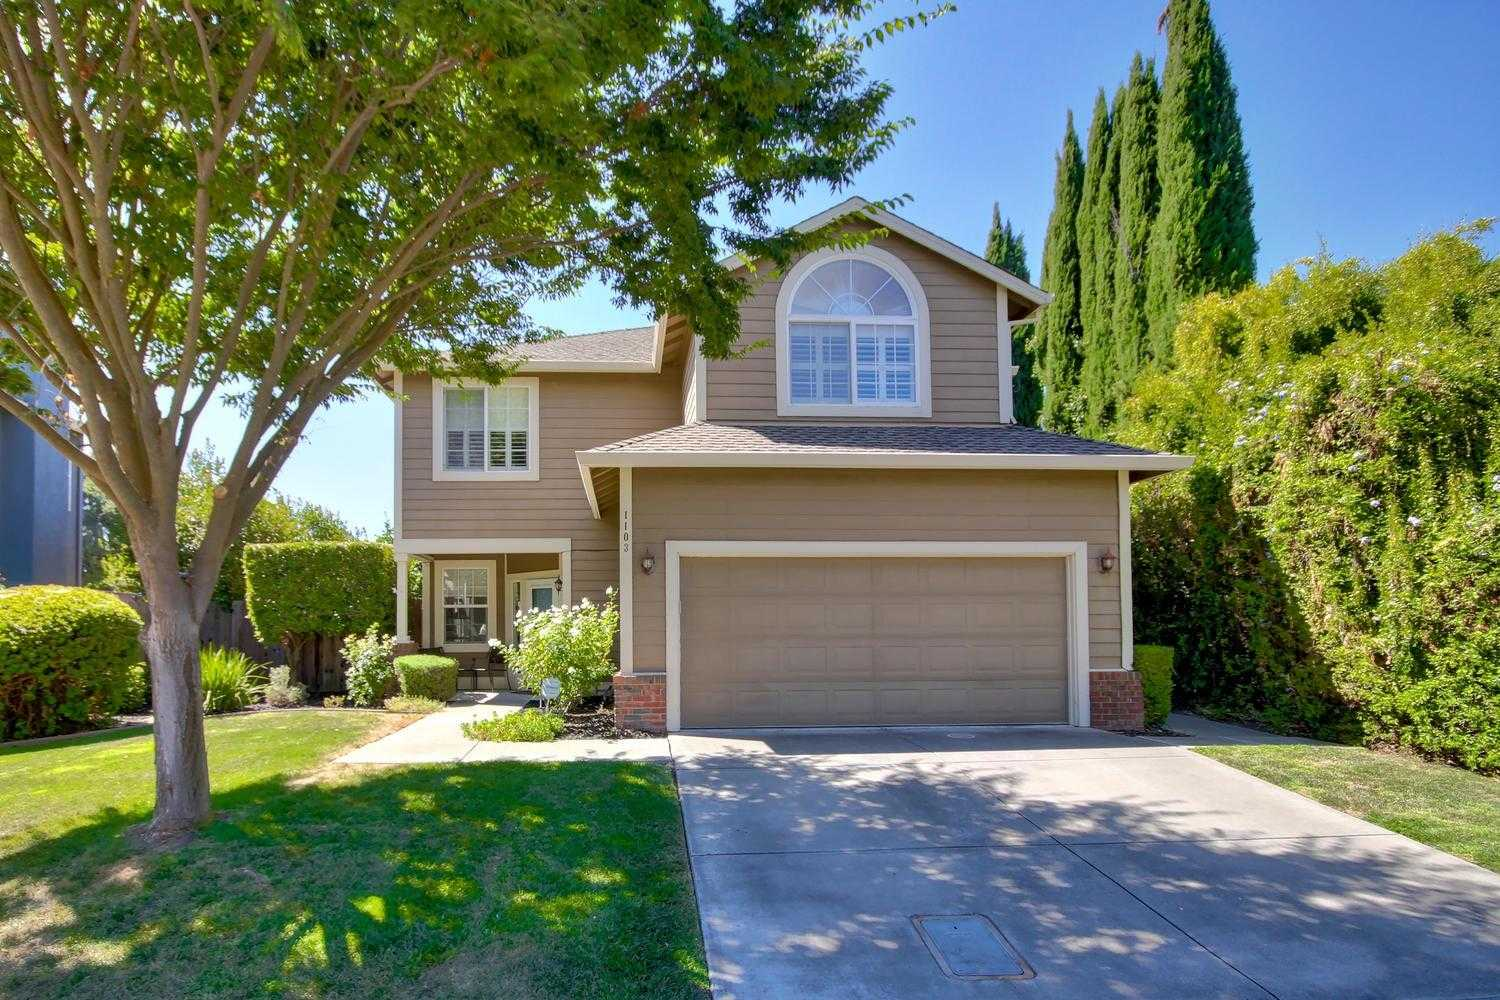 $829,000 - 4Br/3Ba -  for Sale in Sunnyside, Davis